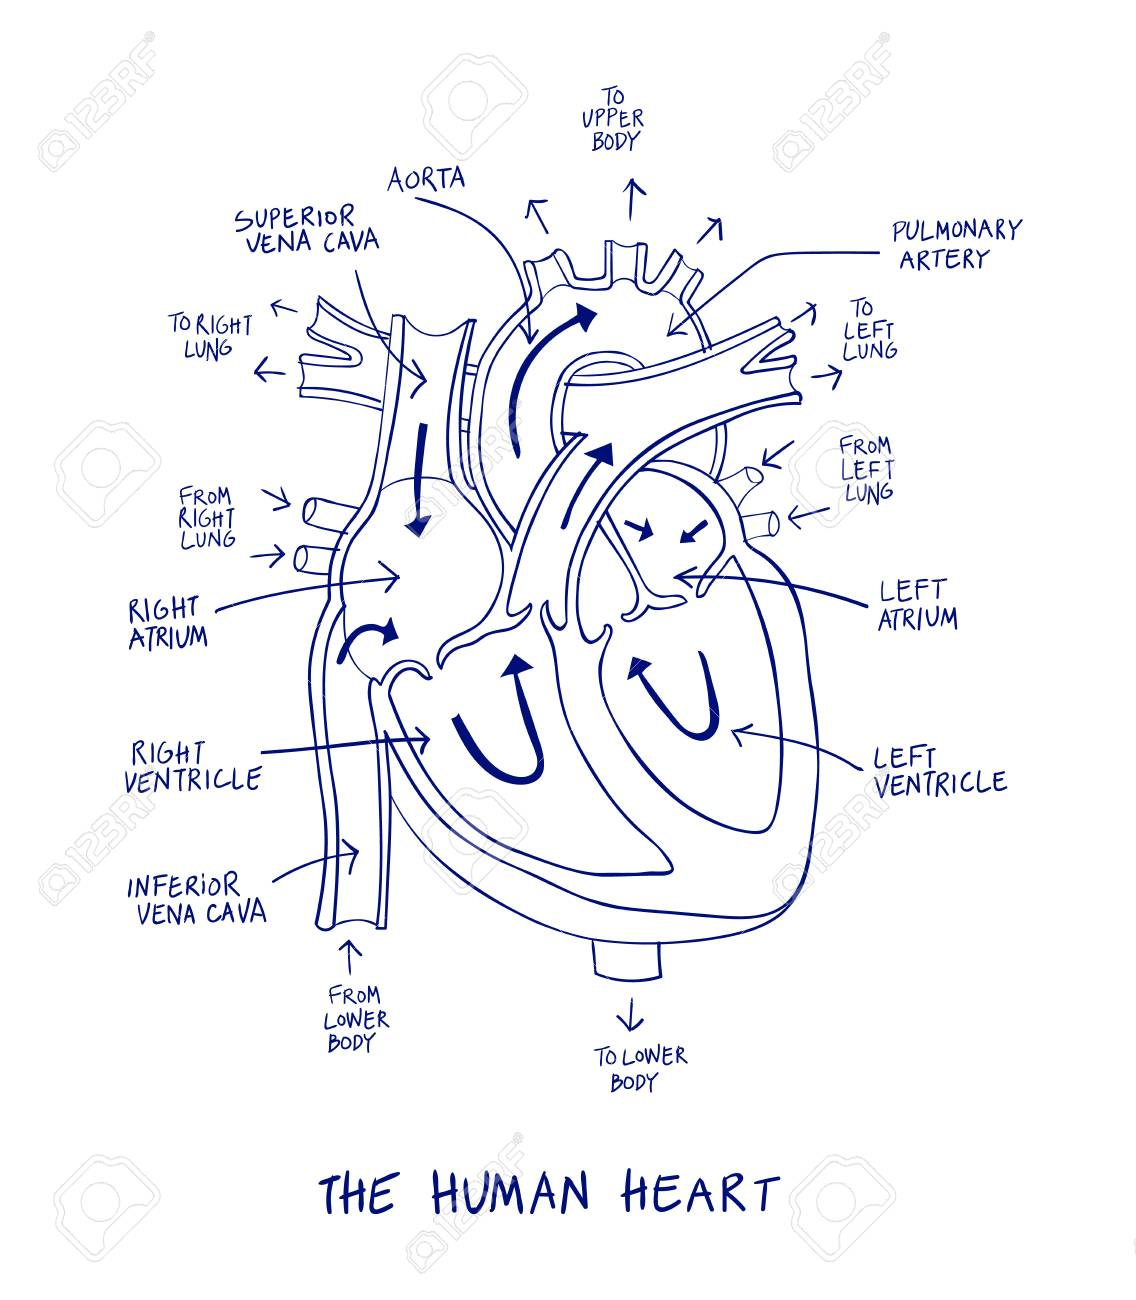 hight resolution of sketch of human heart anatomy on blue line on a white background educational diagram showing